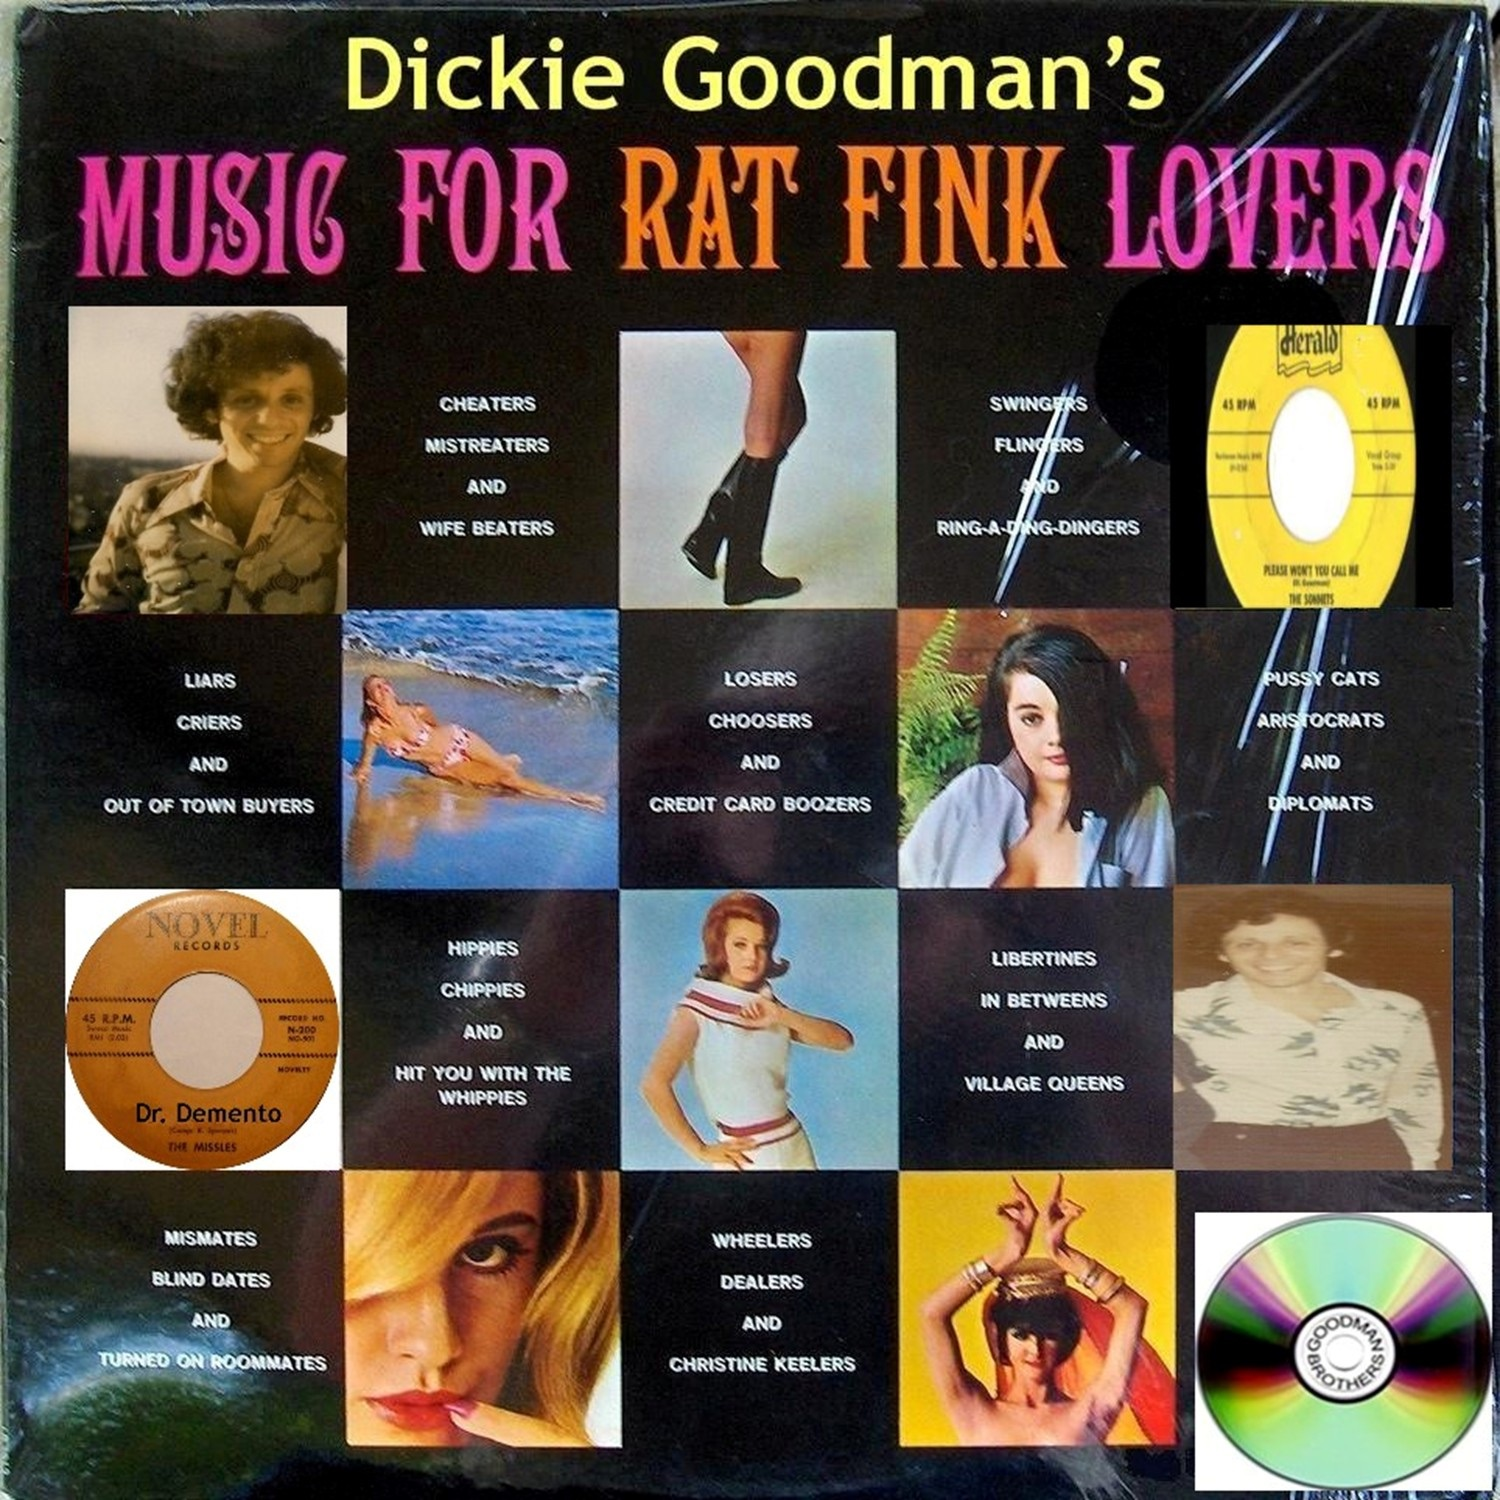 Dickie Goodman's Music for Rat Fink Lovers